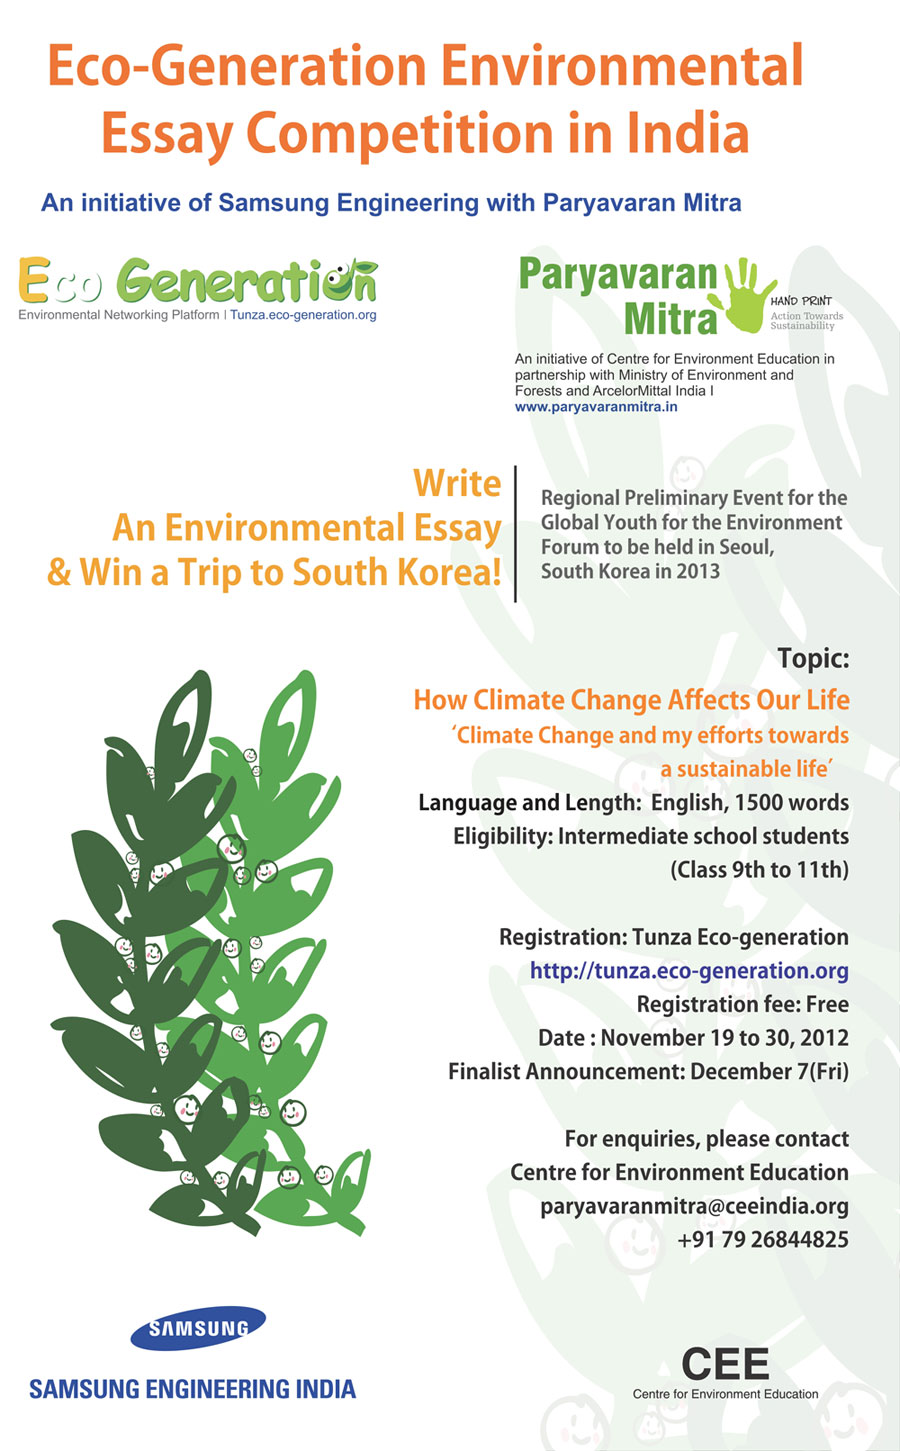 environmental essay competition in essay eco generation environmental essay competition in an initiative of samsung engineering parayavaran